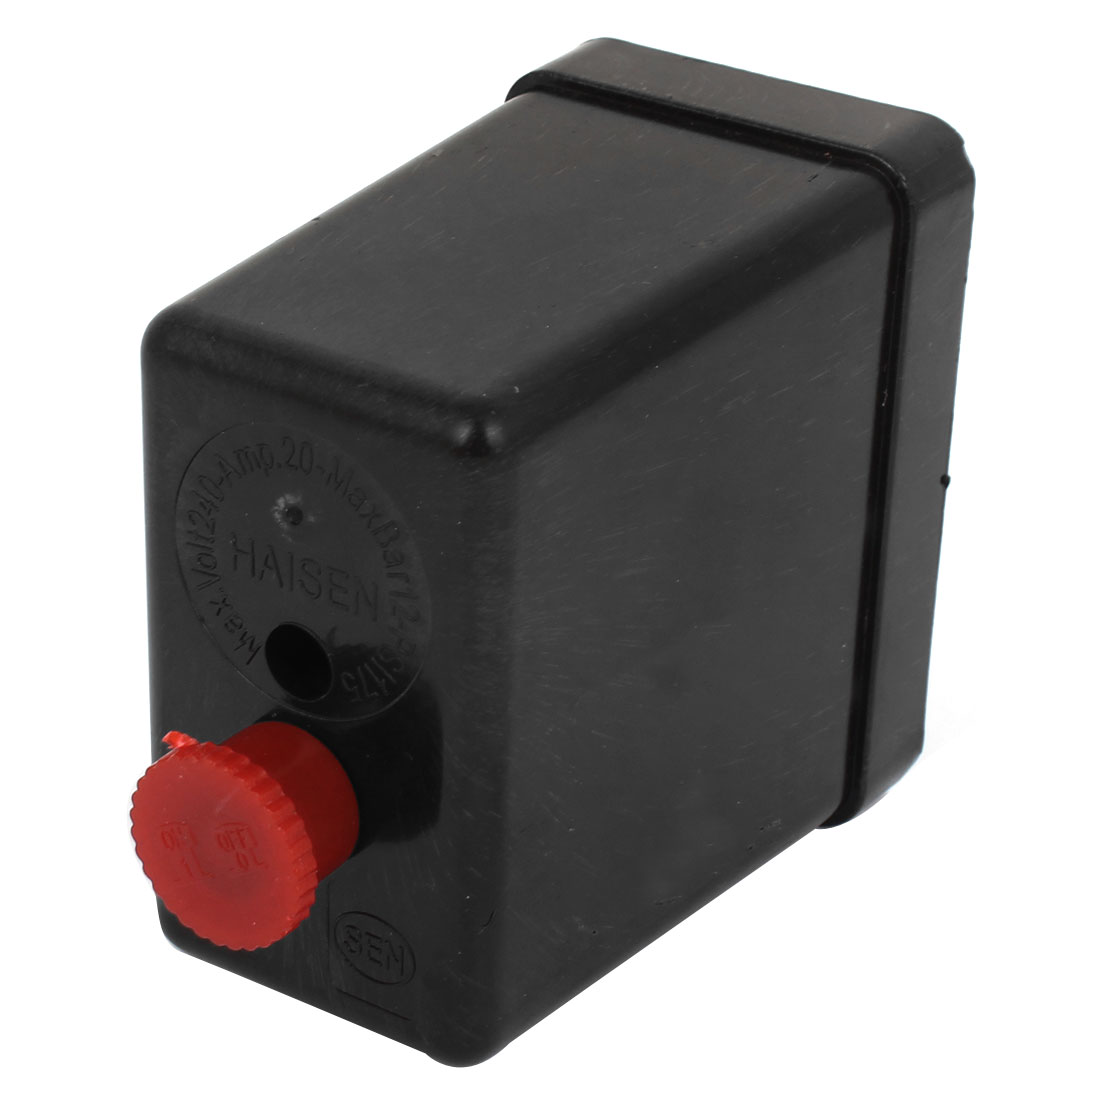 Air Compressor Pressure Switch Control Valve Plastic Outer Casing Sheel Black